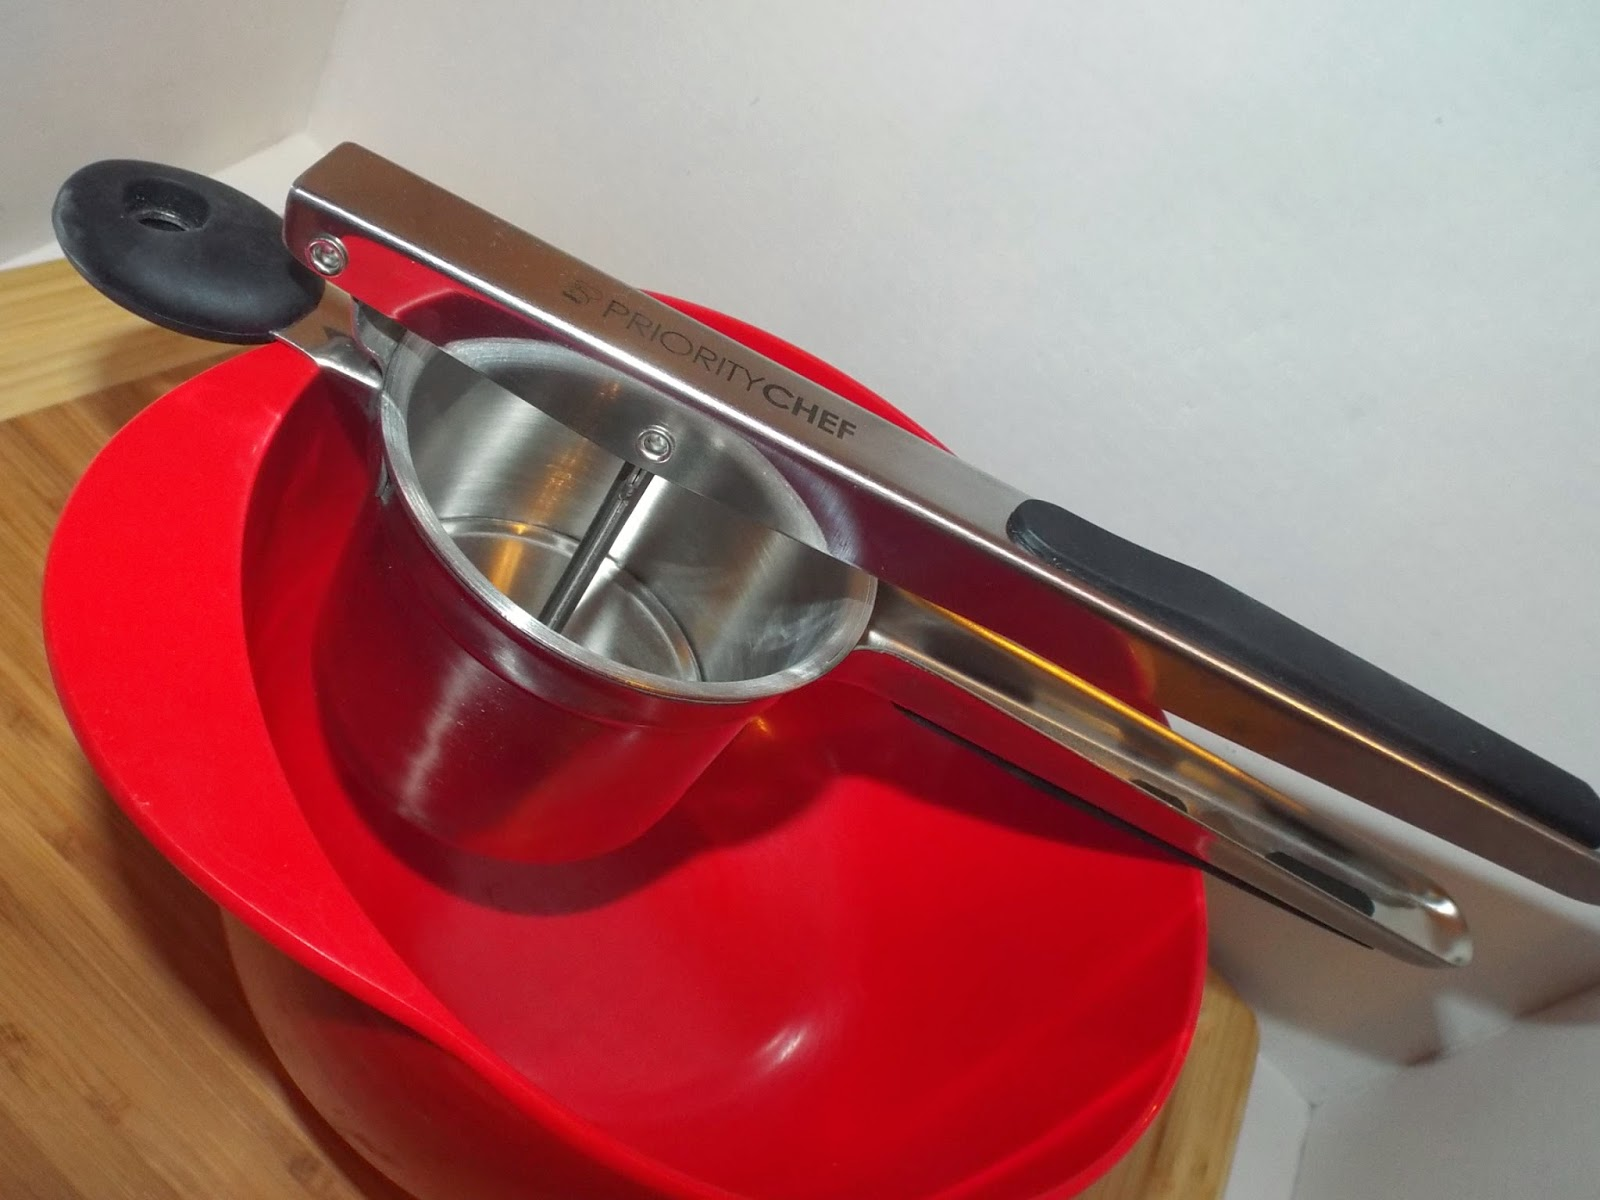 Priority Chef: Potato Ricer